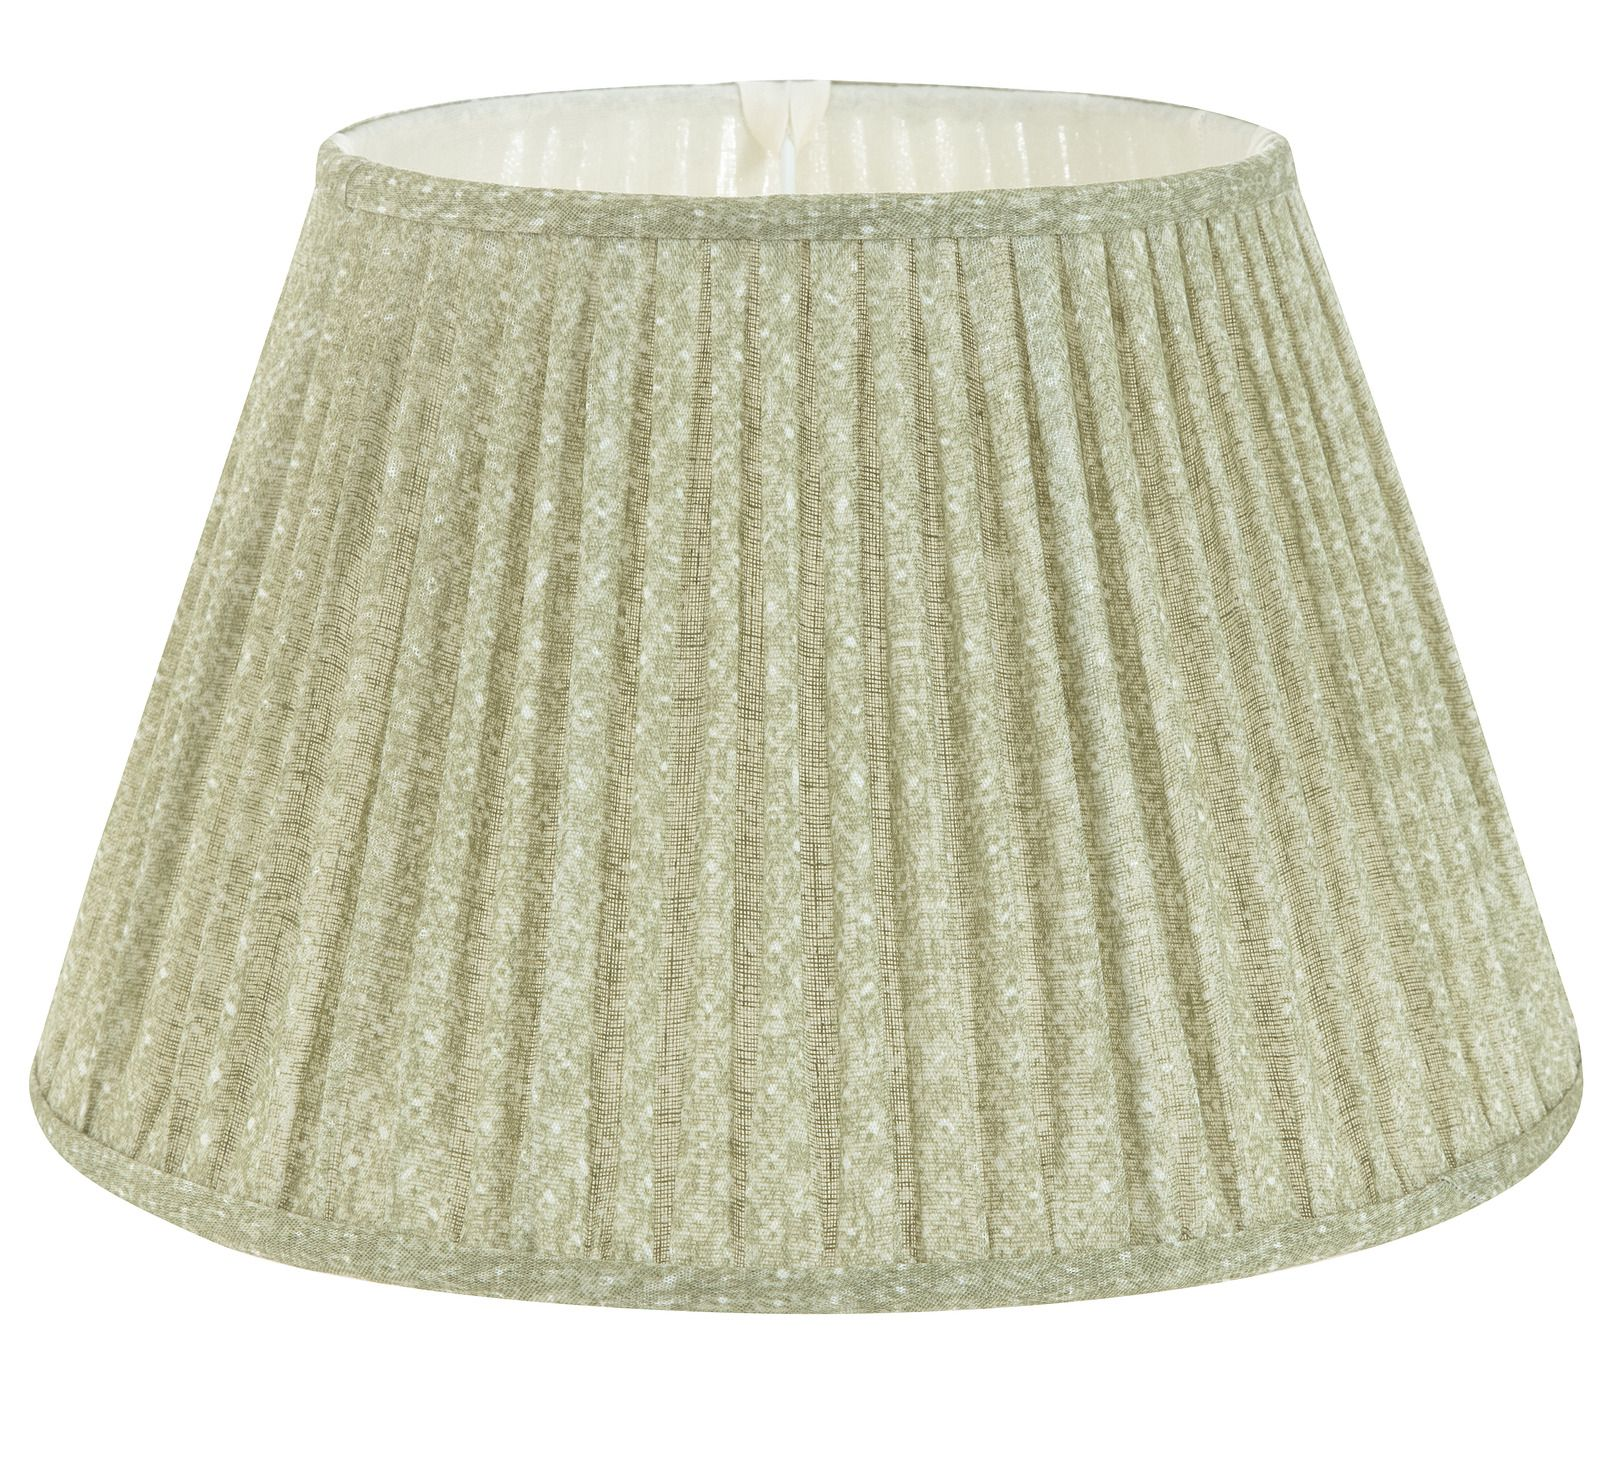 in loving also the shade sight light shades allows you a lampshades beautiful clean is illuminated and for linen texture lampshade lamp coarser when we concord this through can re clas white opt more